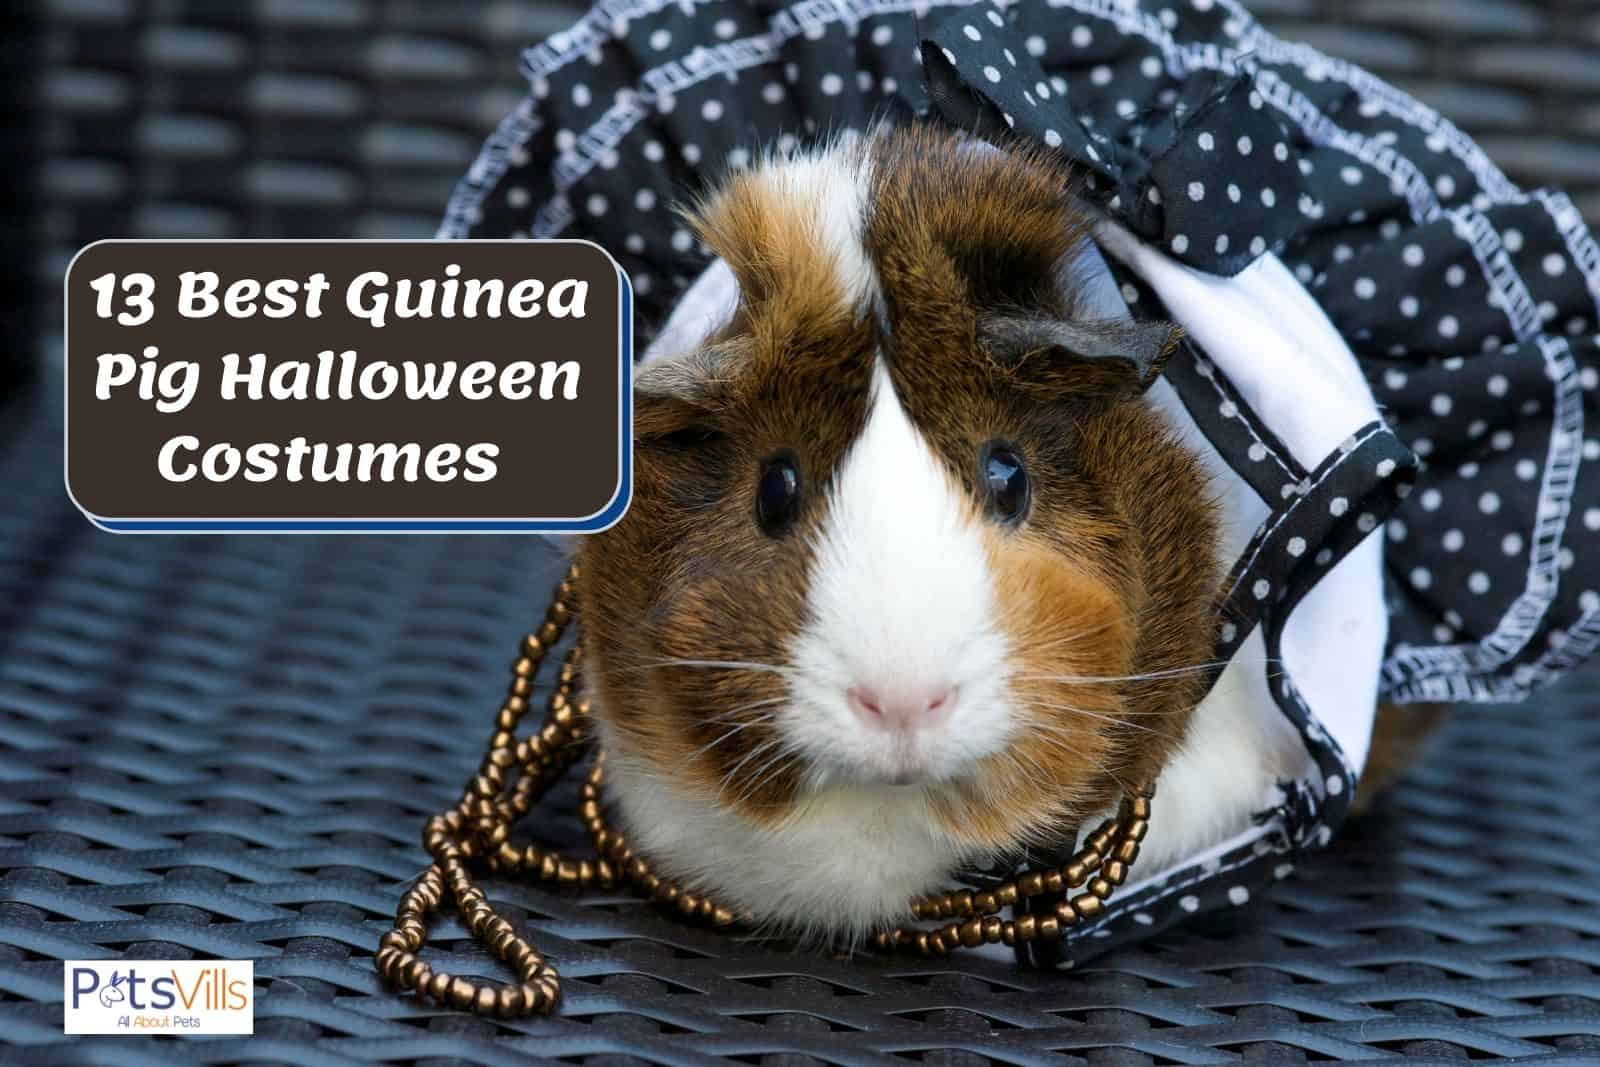 cavy wearing a black dress, one of the Best Guinea Pig Halloween Costumes